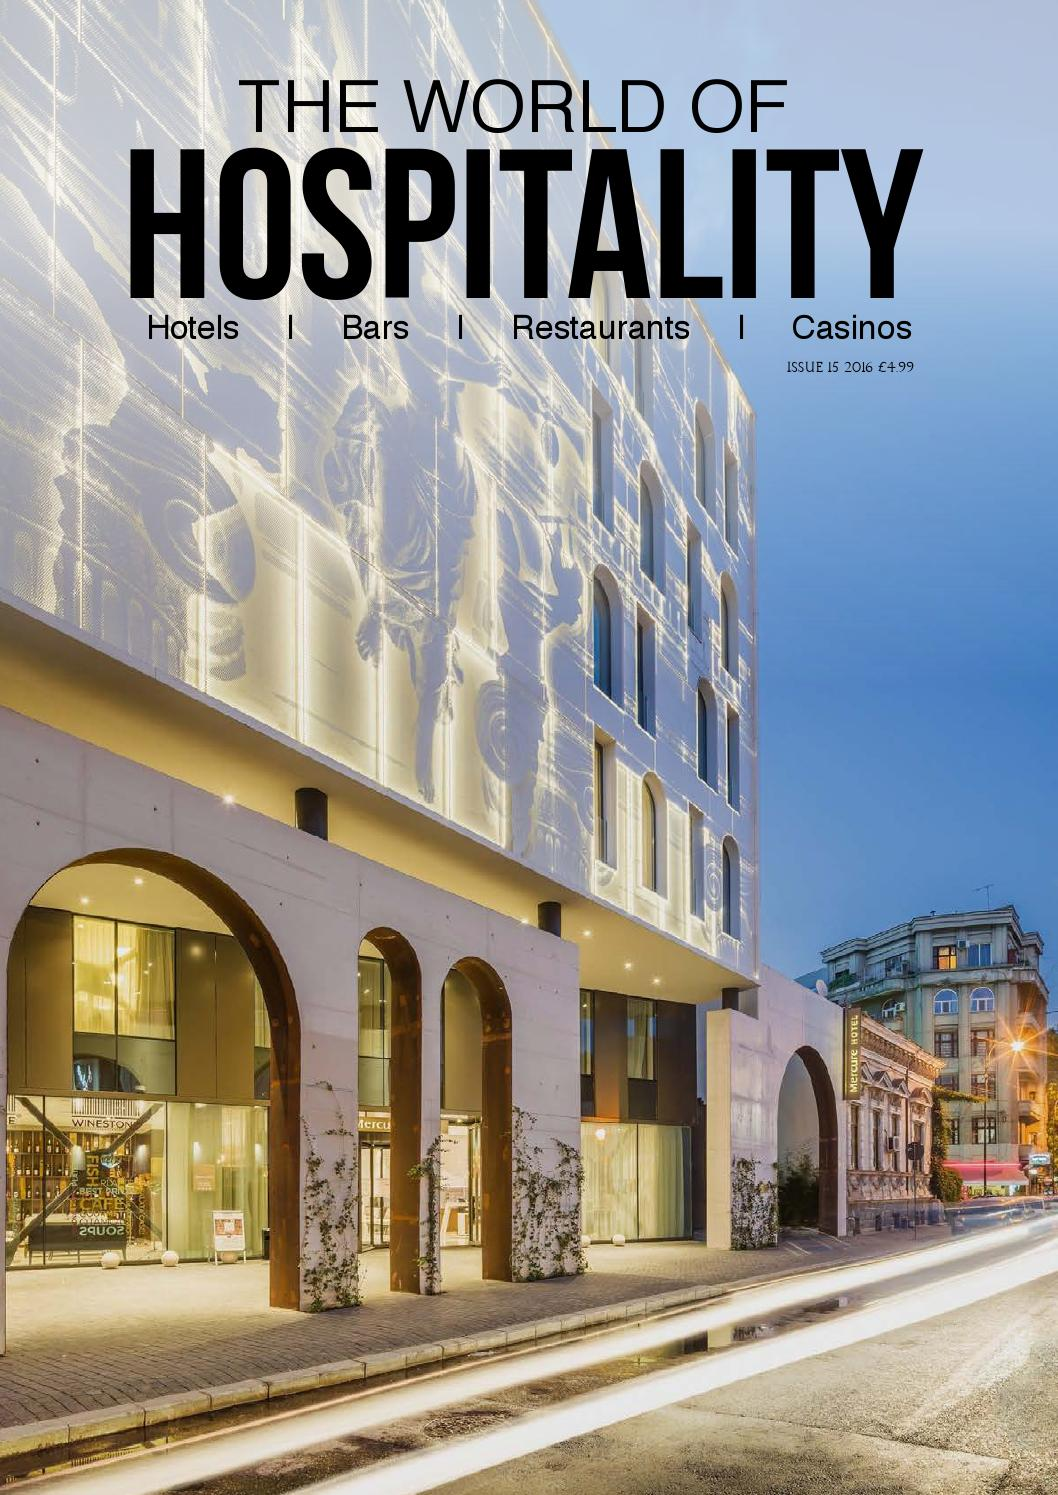 The World Of Hospitality Issue 15 2016 By Residential Electrical Wiring Diagrams Price Usd 1000 Minorder 500 Issuu